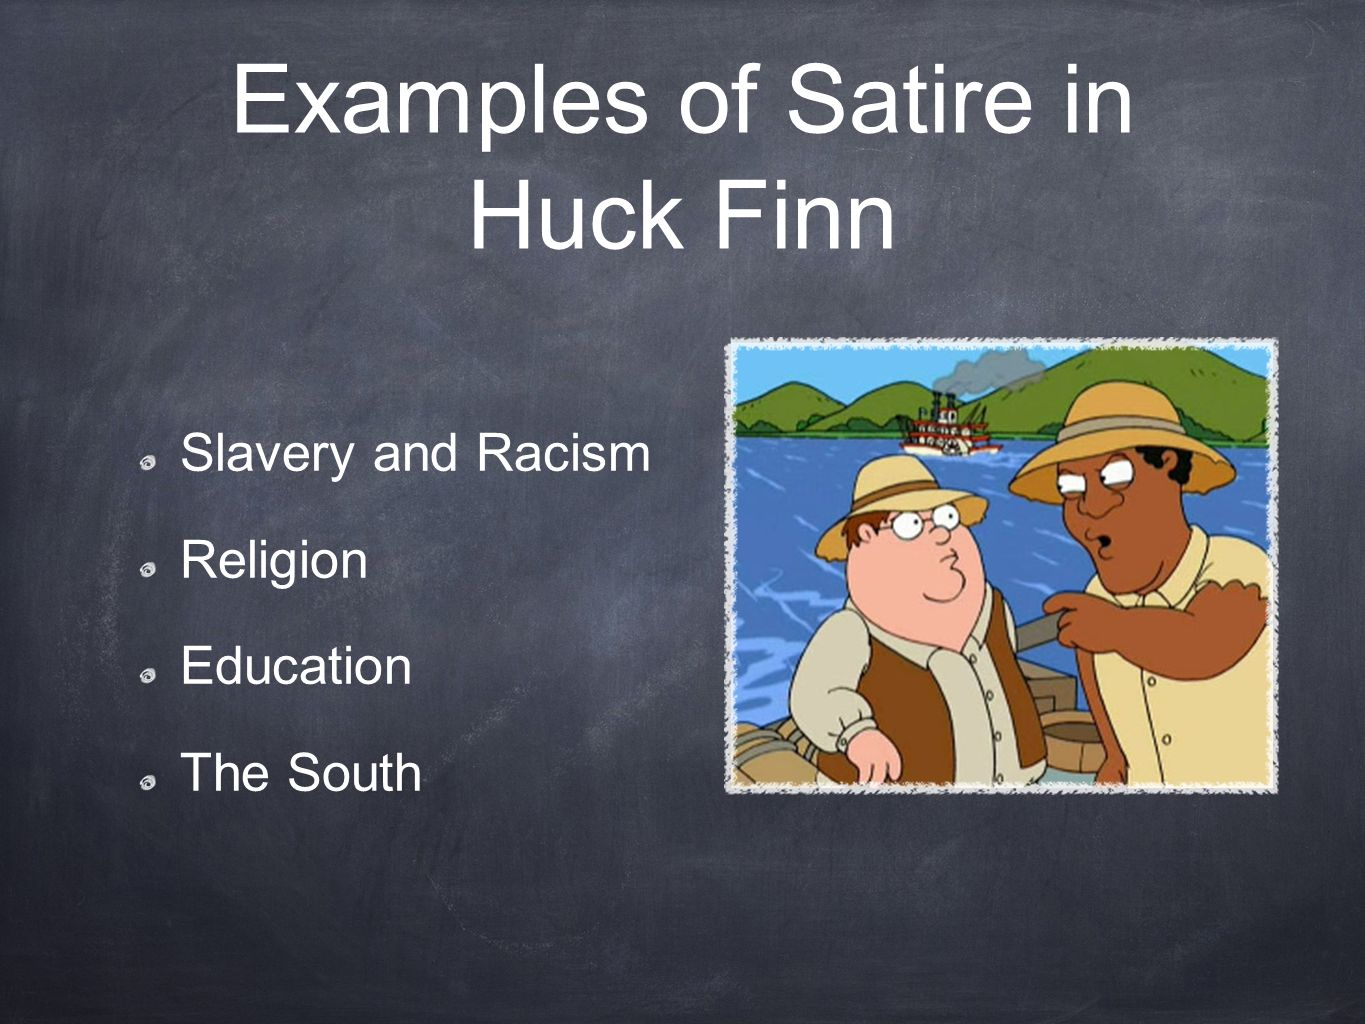 essays satire huck finn To understand mark twain's cynicism in the adventure of huckleberry finn one must understand what satire is it can be defined as a literary work holding up human vices and follies to ridicule or scorn and to expose and discredit vice or folly satire.